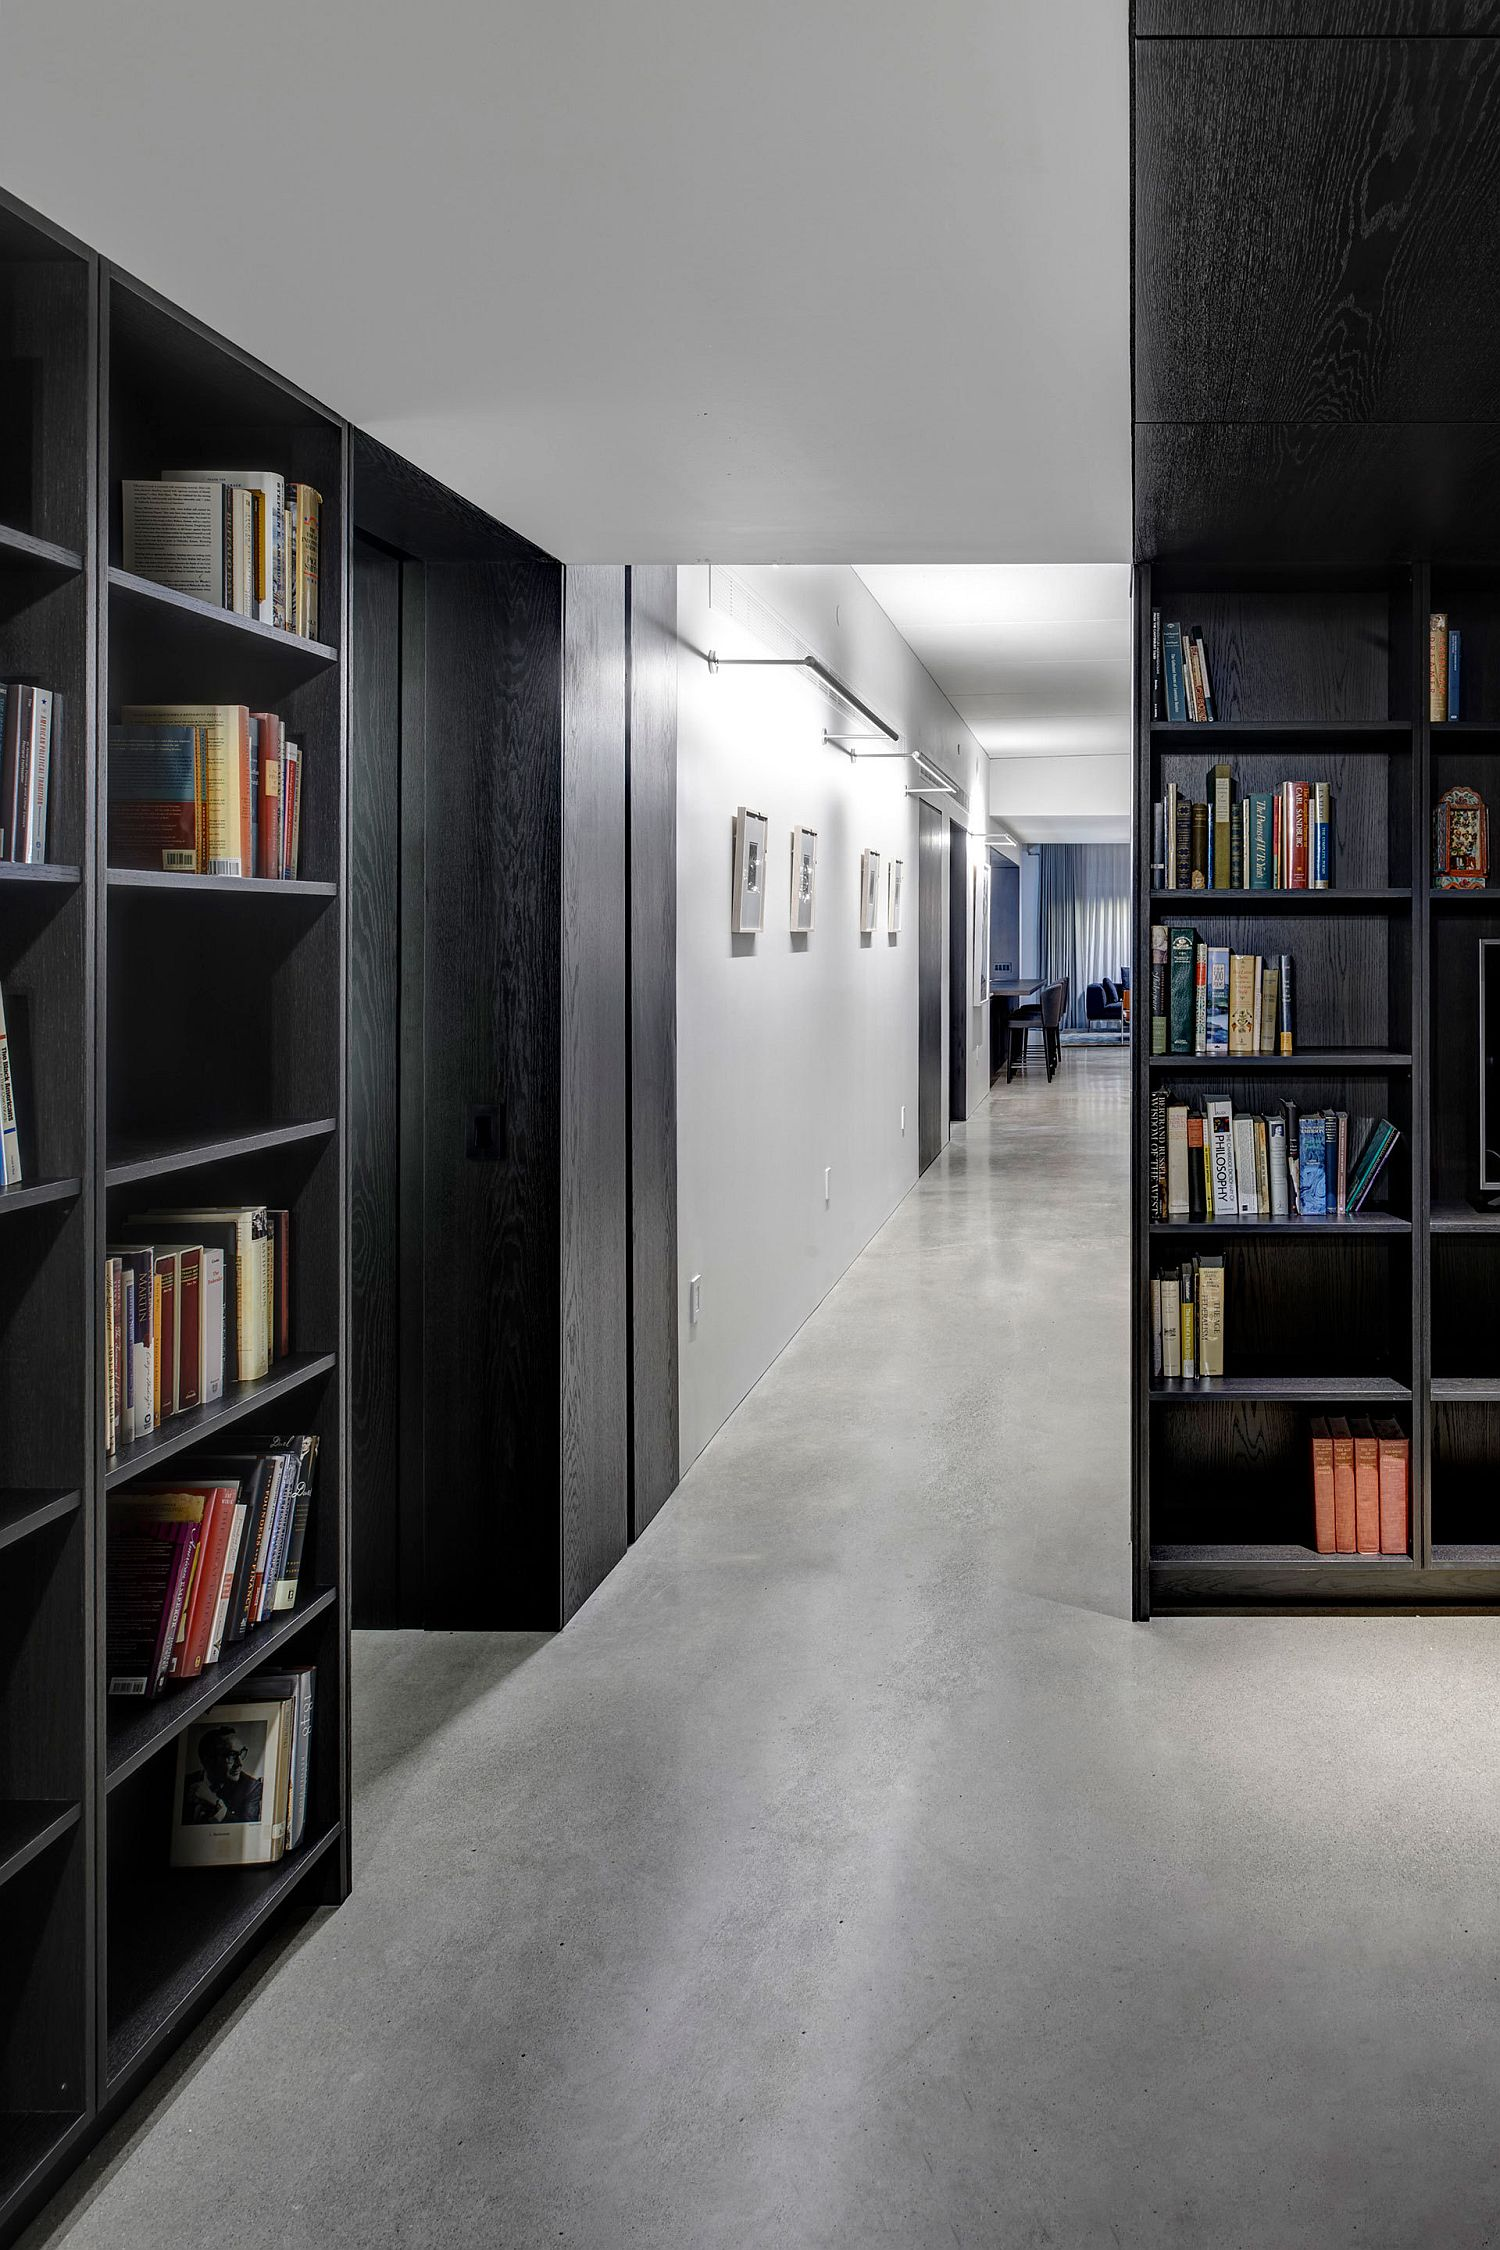 Bookshelves-crafted-using-dark-wooden-elements-make-a-big-impact